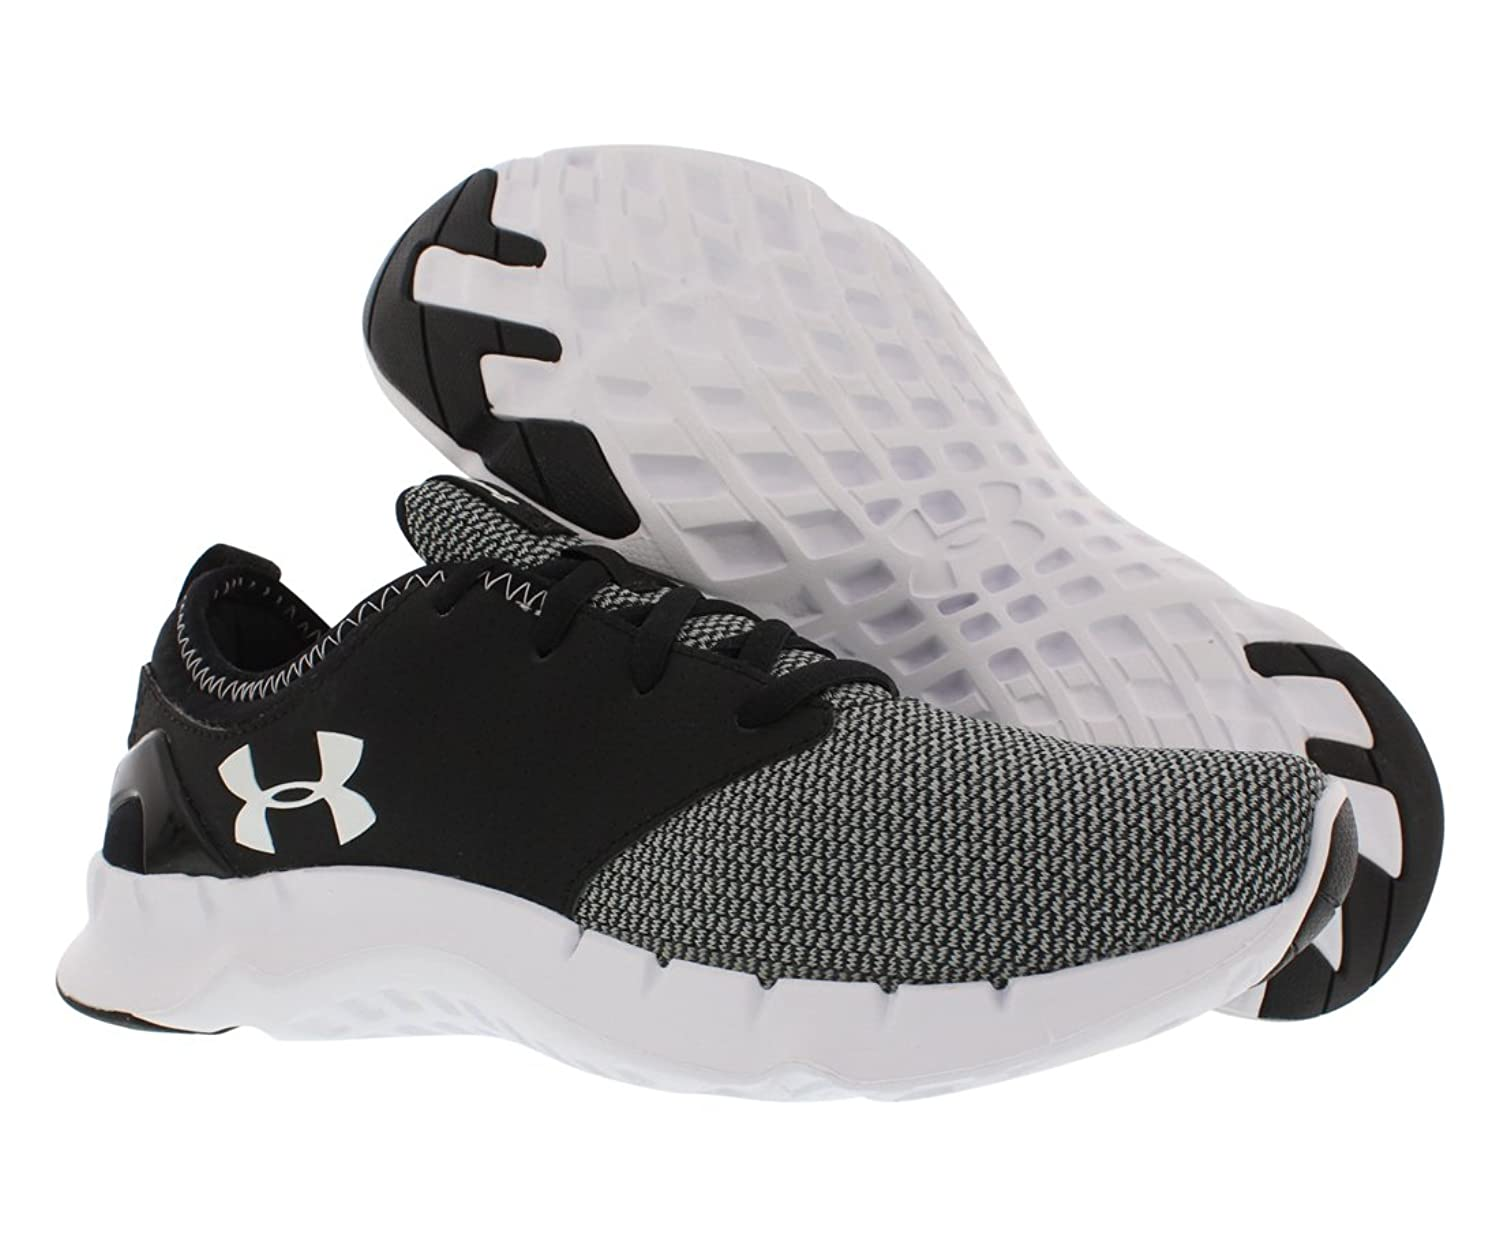 Amazon Under Armour Kvinners Joggesko dMTYtBRYF5